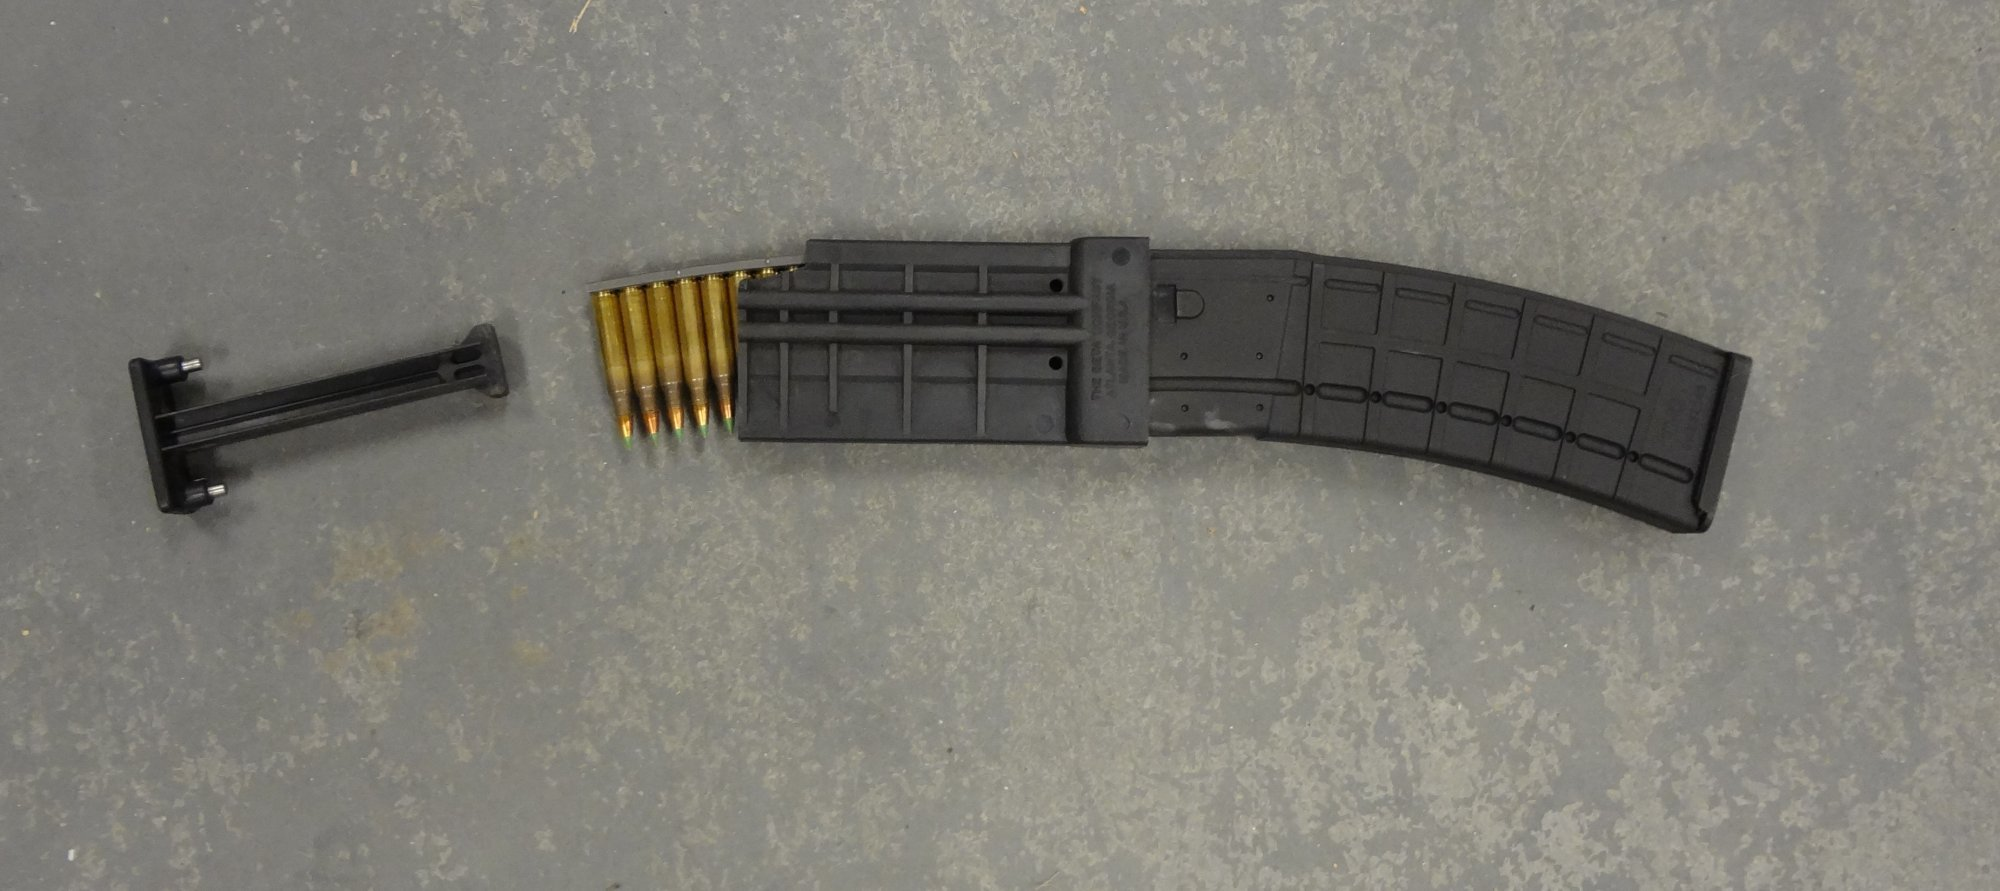 MWG IK 520 40 Round Steel Reinforced Polymer AR 15 Magazine 5.56mm Mag with C MAG Speed Loader Jeff Gurwitch 1 small MWG IK 520 40 Rounder 40 Round Steel Reinforced Polymer AR 15 Rifle Magazine (5.56mm/.223 Rem.) Lookin Good: Initial DR Range Report!